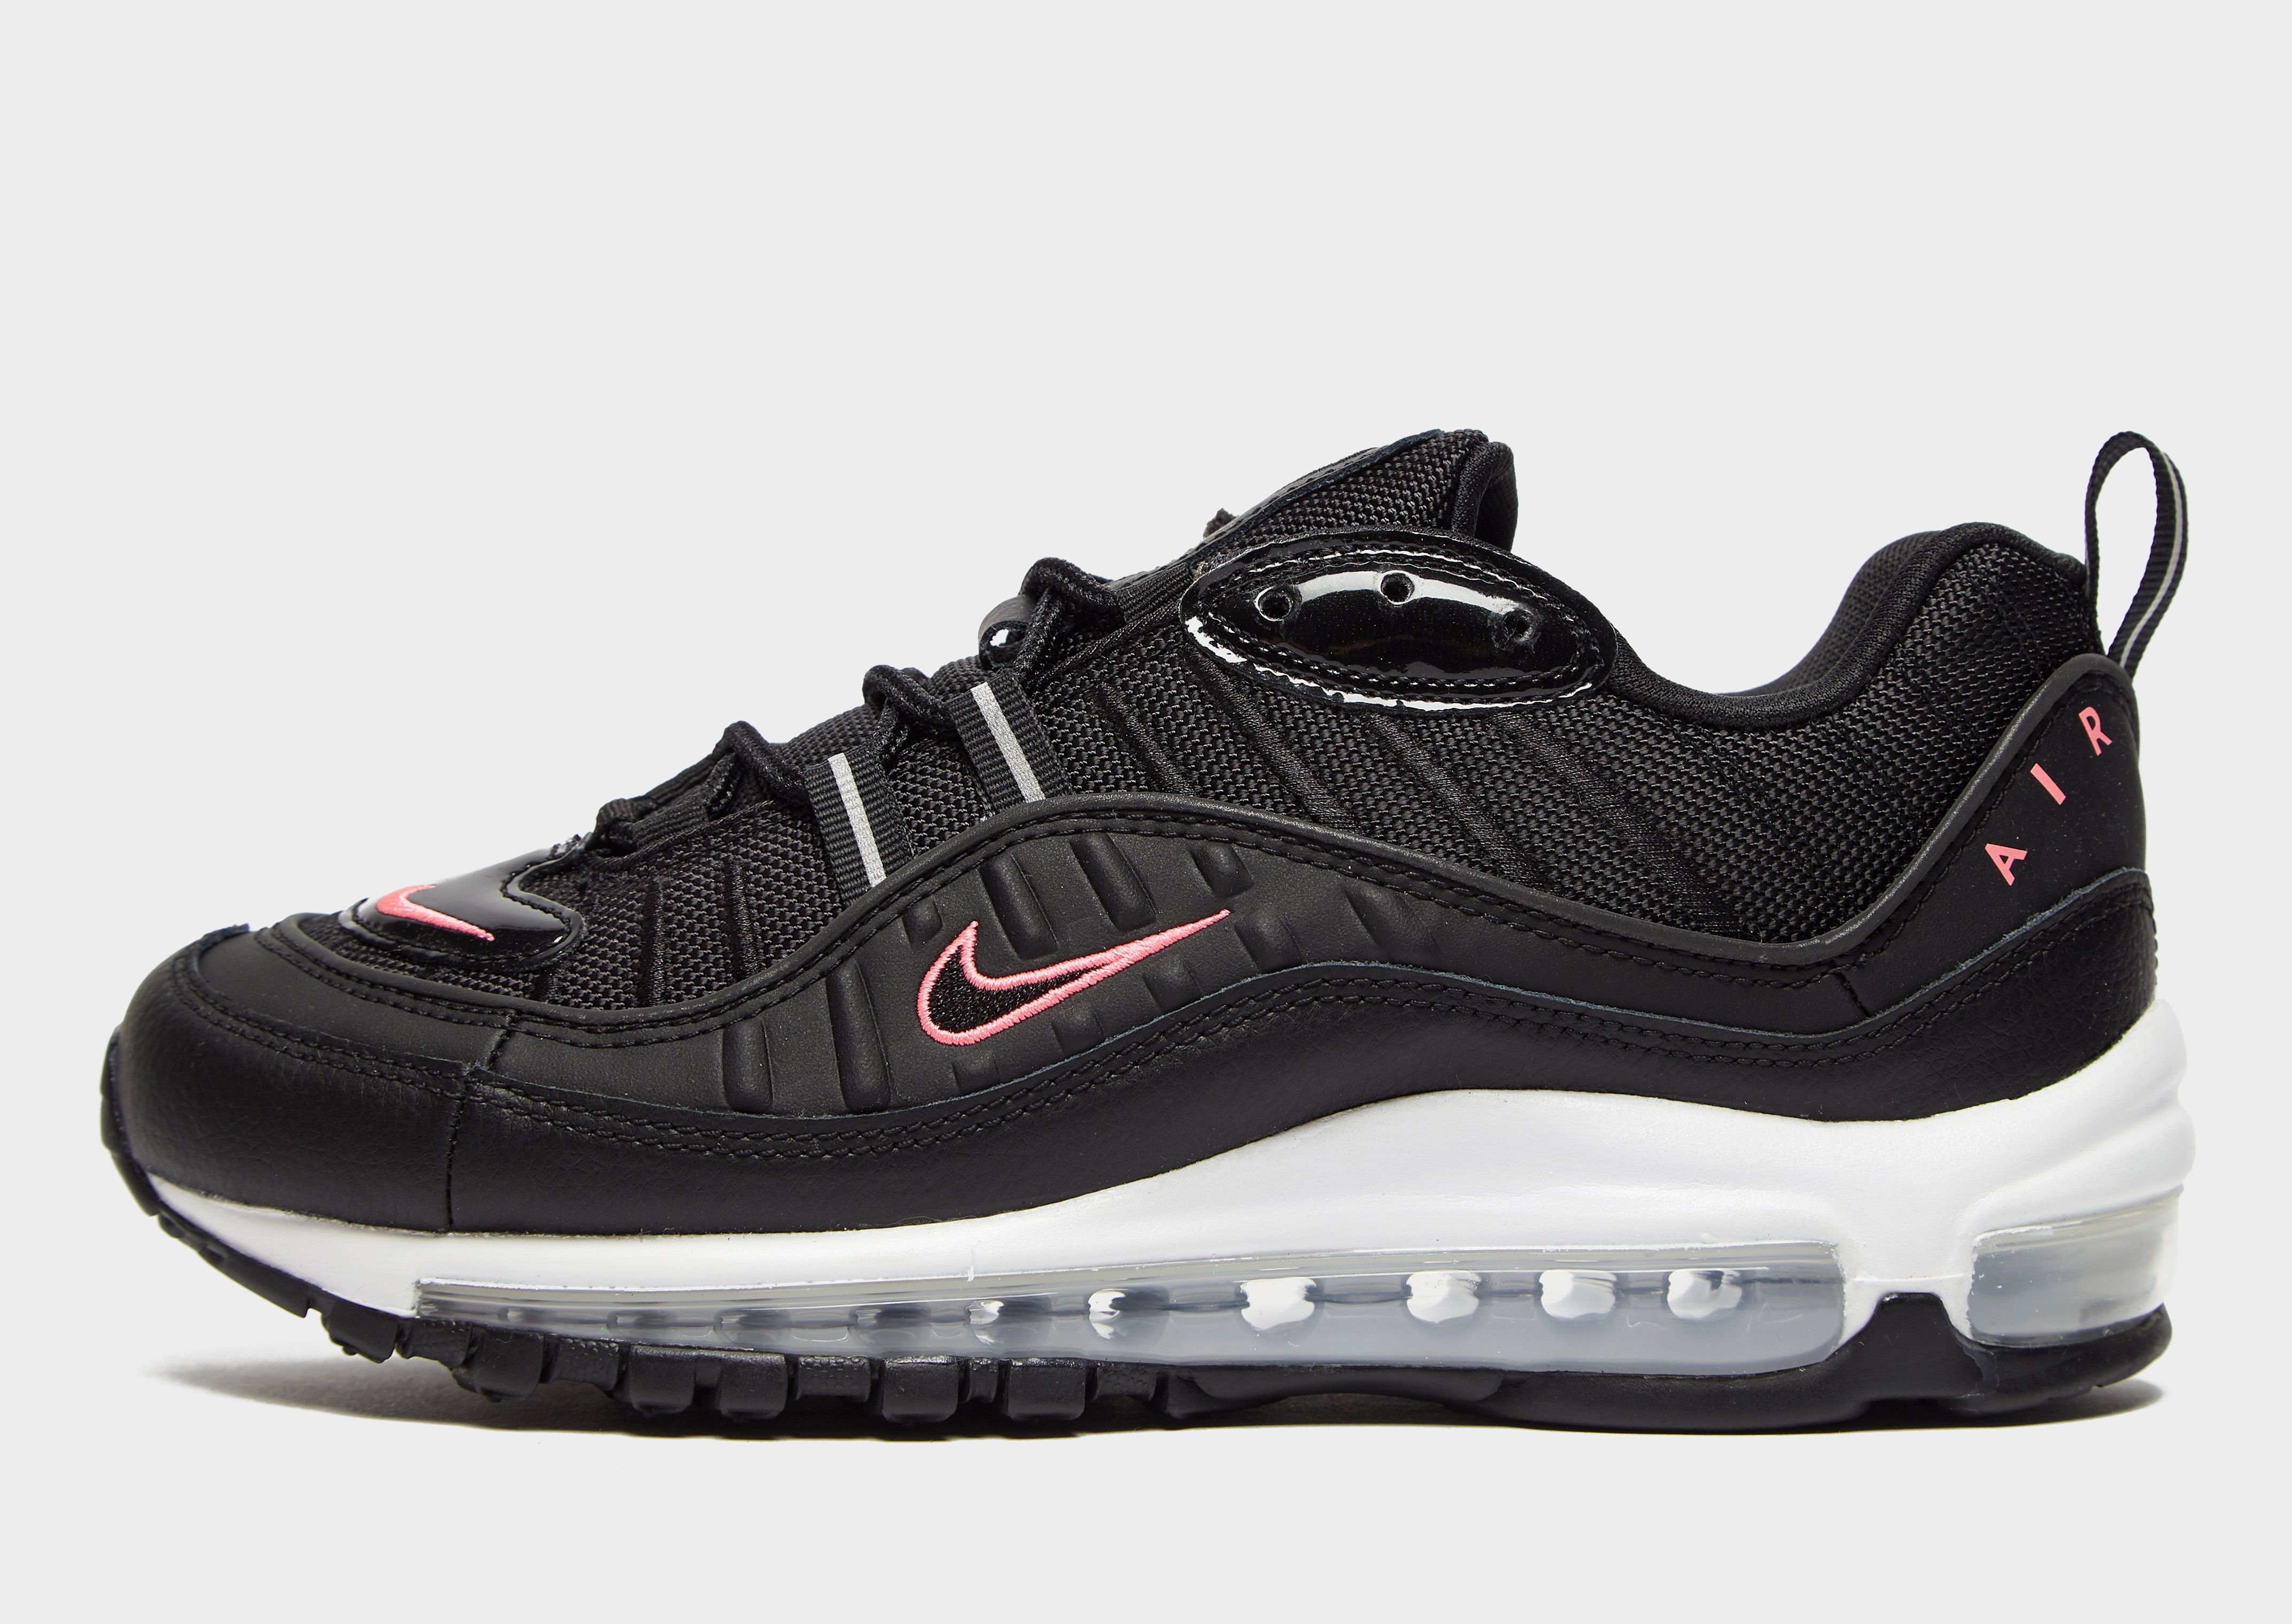 brand new ad6e2 e28c7 Nike Air Max 98 Women's Shoe | JD Sports